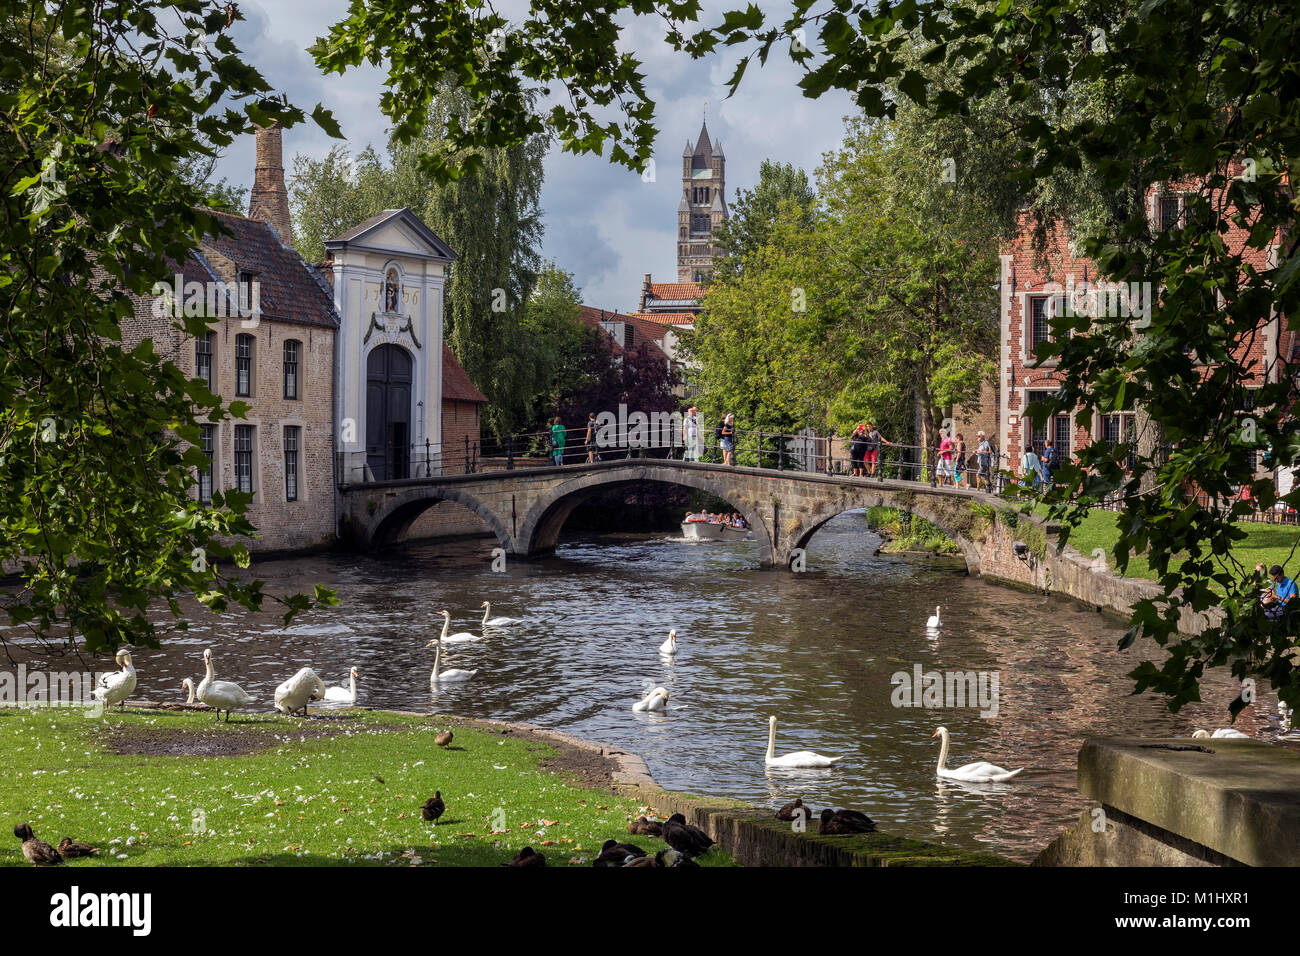 View from Parque de la Vina to the Begijnhof Bridge in the city of Bruges in Belgium. - Stock Image